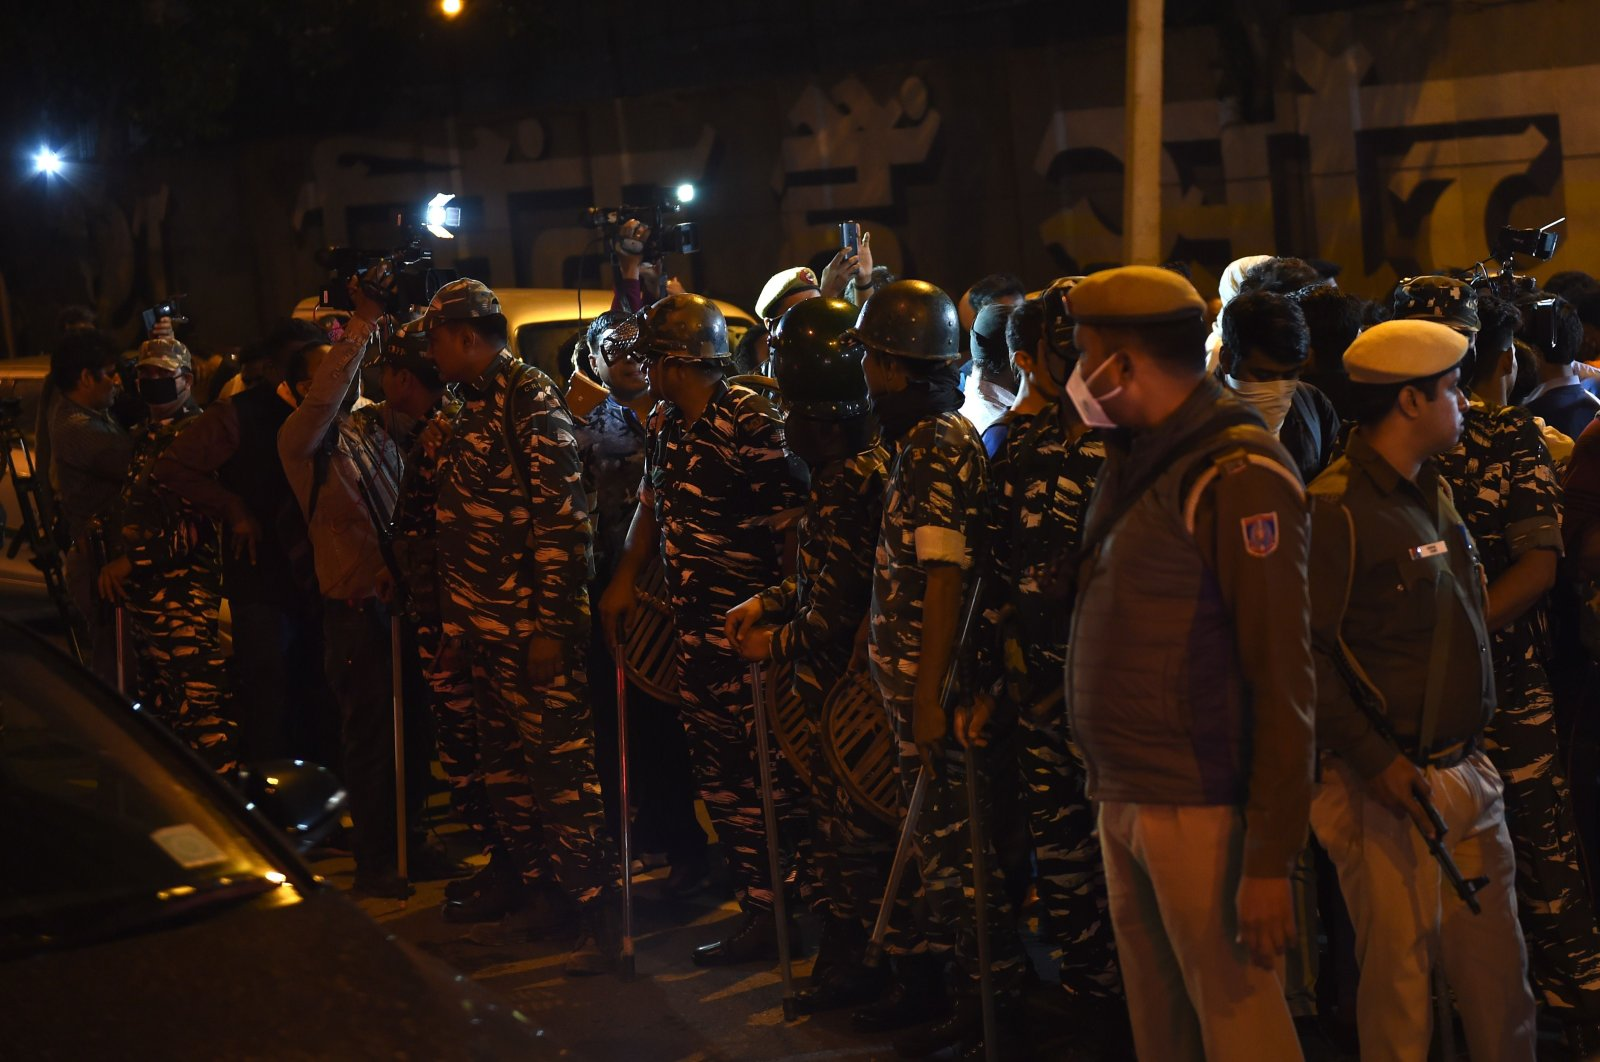 Indian security forces stand outside the gates of Tihar Jail, New Delhi, March 20, 2020. (AFP Photo)